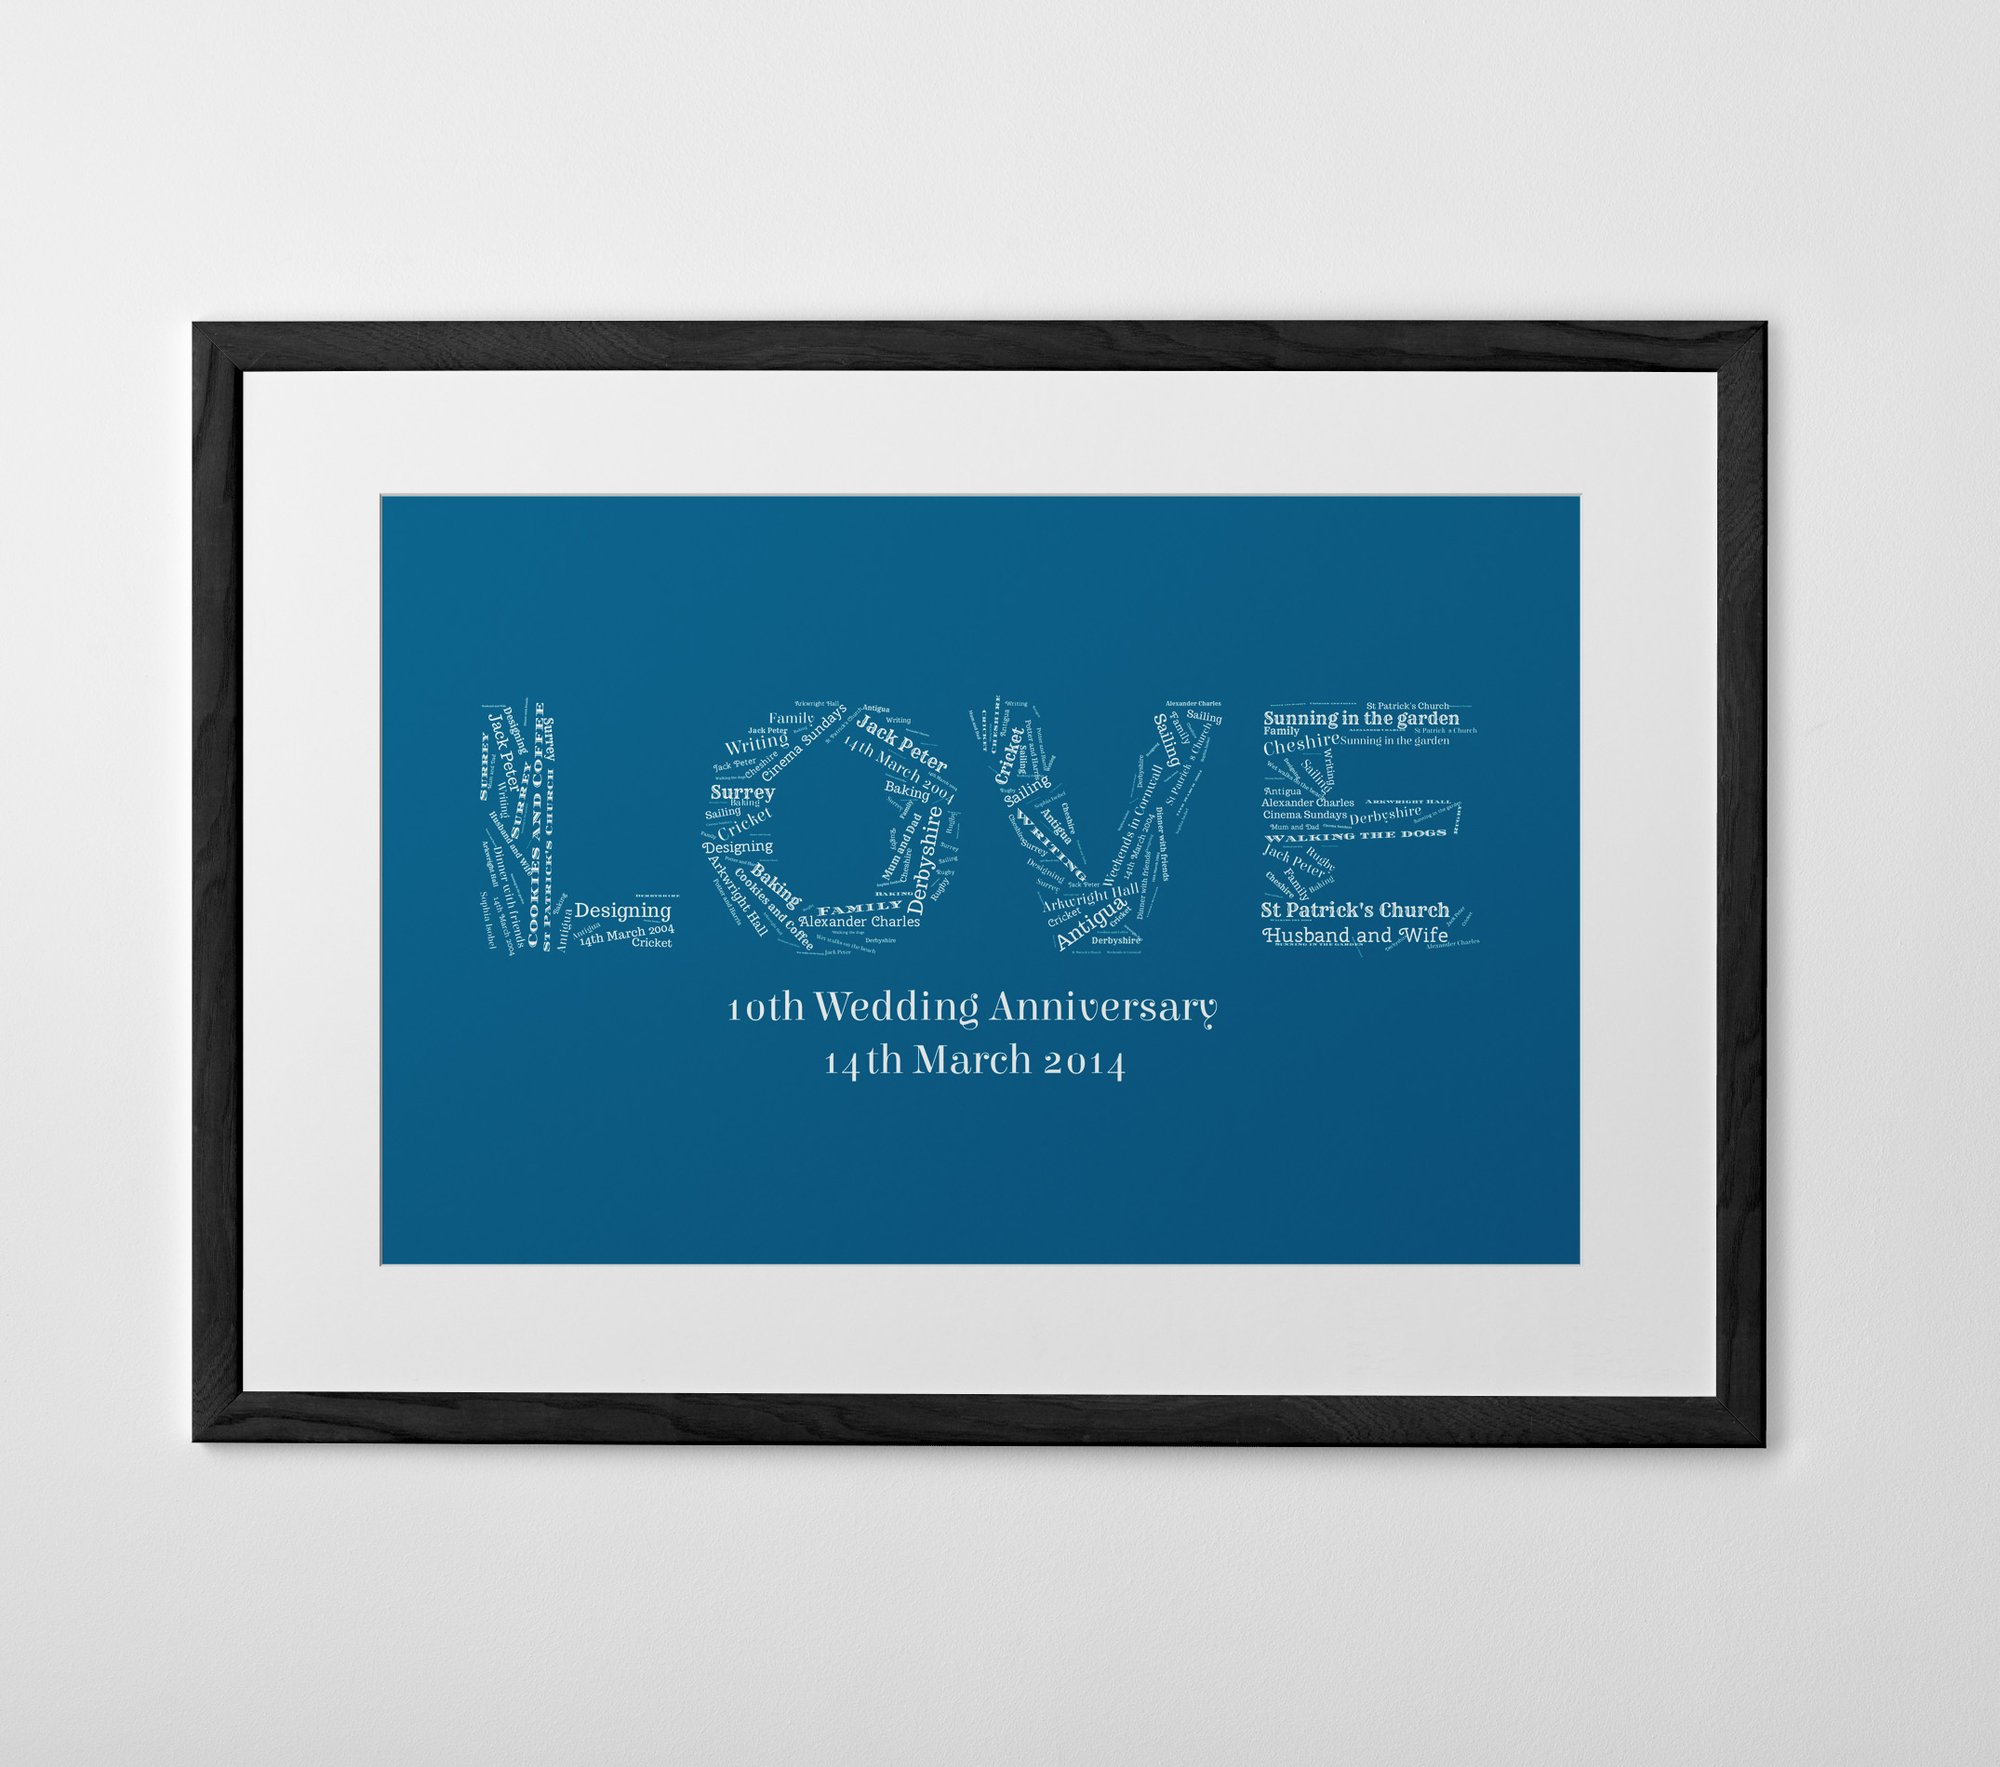 Personalized Words on Words Print, Poster or Canvas - Posterhaste